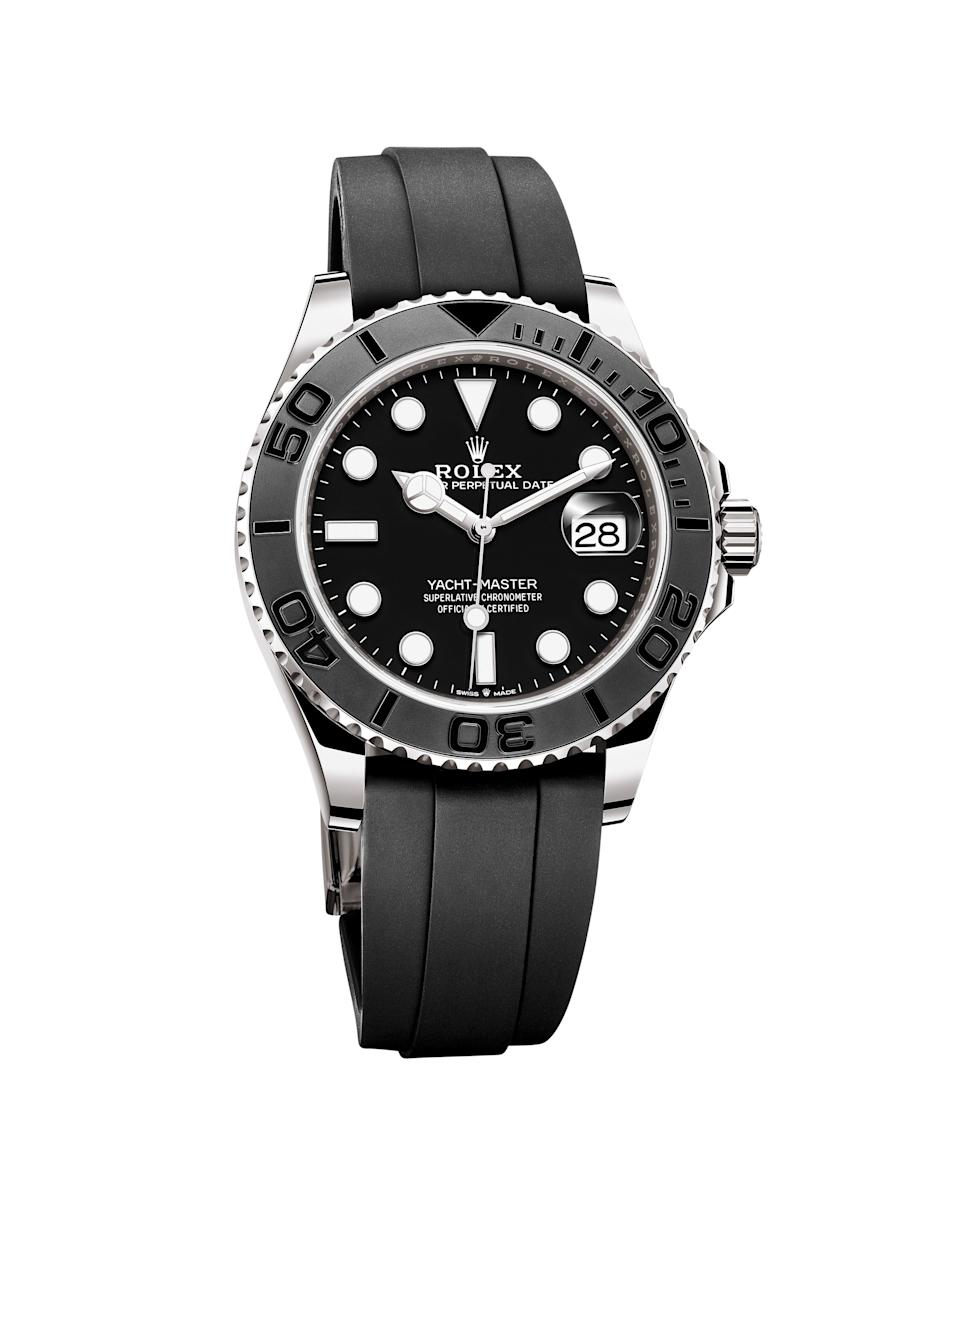 Rolex oyster perpetual yacht-master watch; $27,800. rolex.com